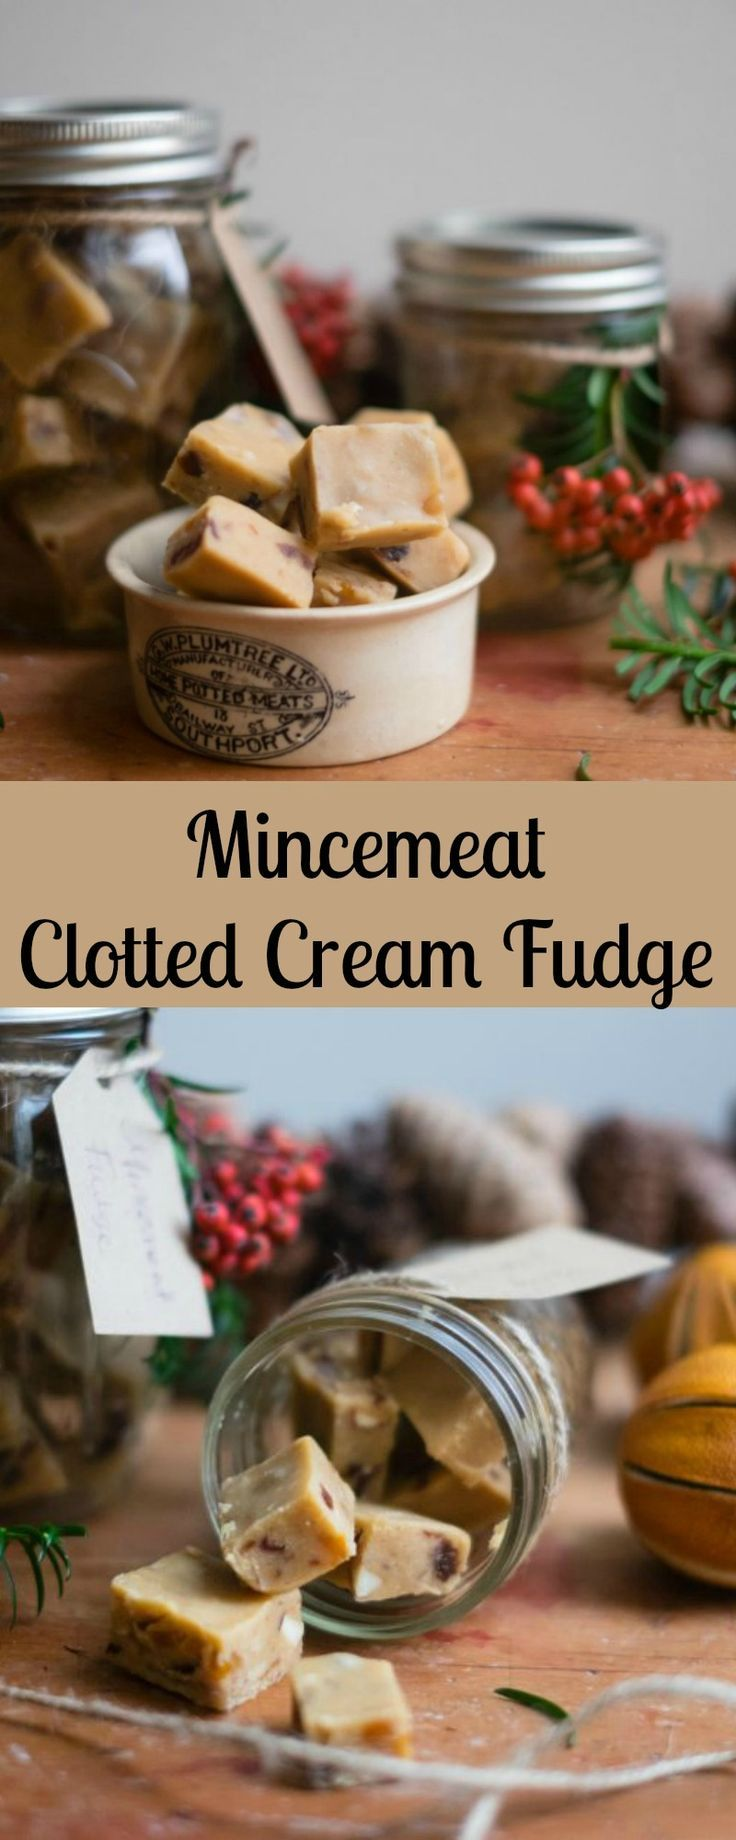 #ConfectionCollection: Mincemeat Clotted Cream Fudge - Patisserie Makes Perfect